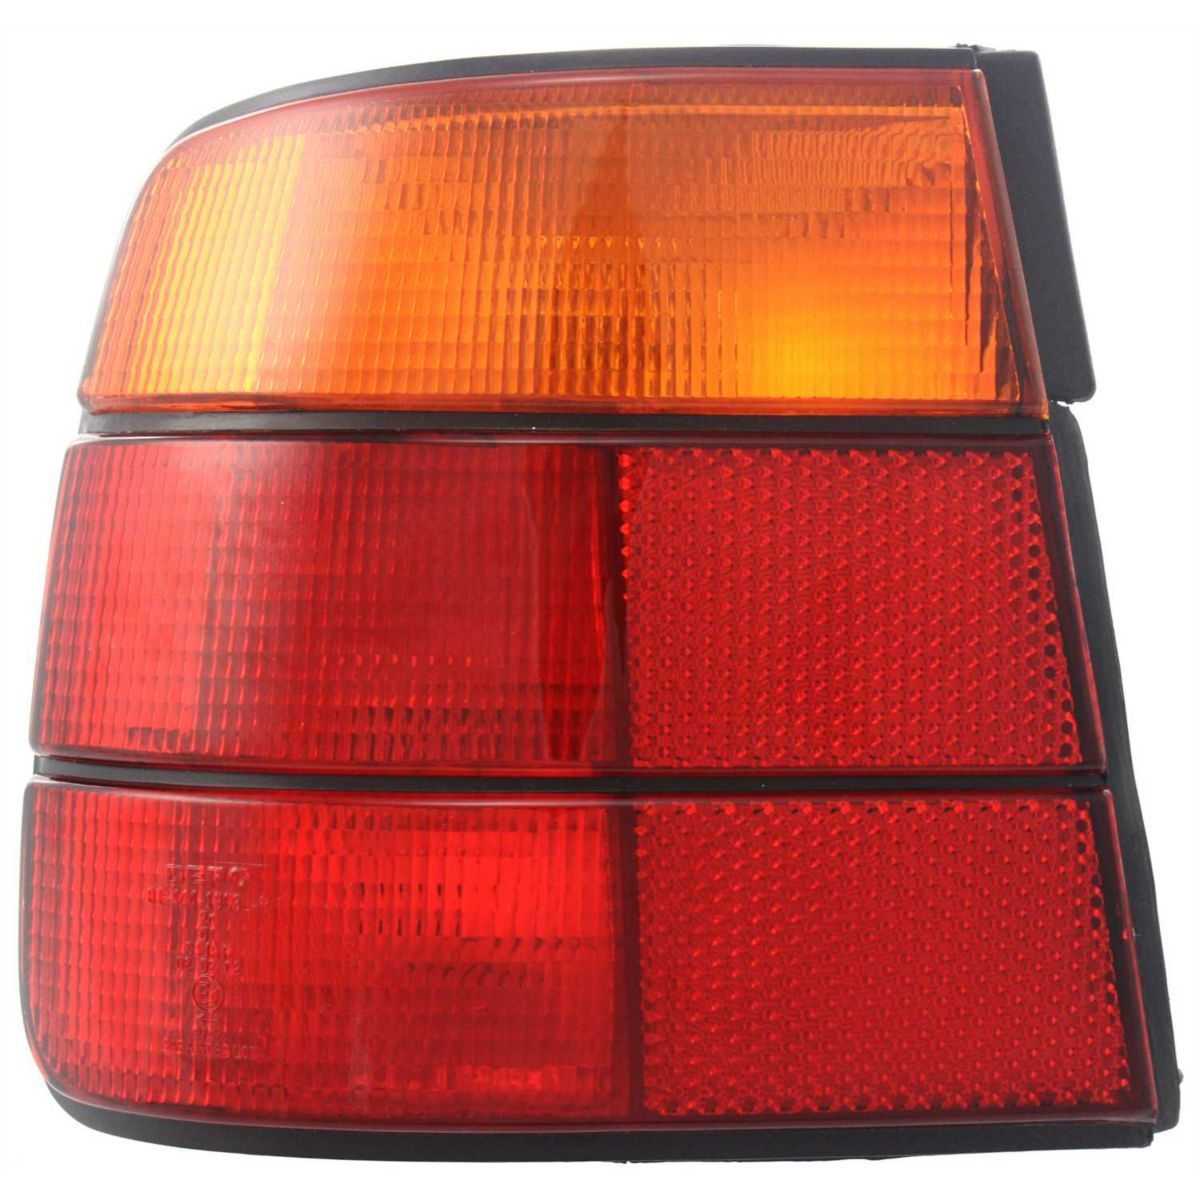 <b>New Driver Side Outer Tail Lamp Assembly Fits BMW 525I 530I 535I 540I BM2800101 63211389011 </b>